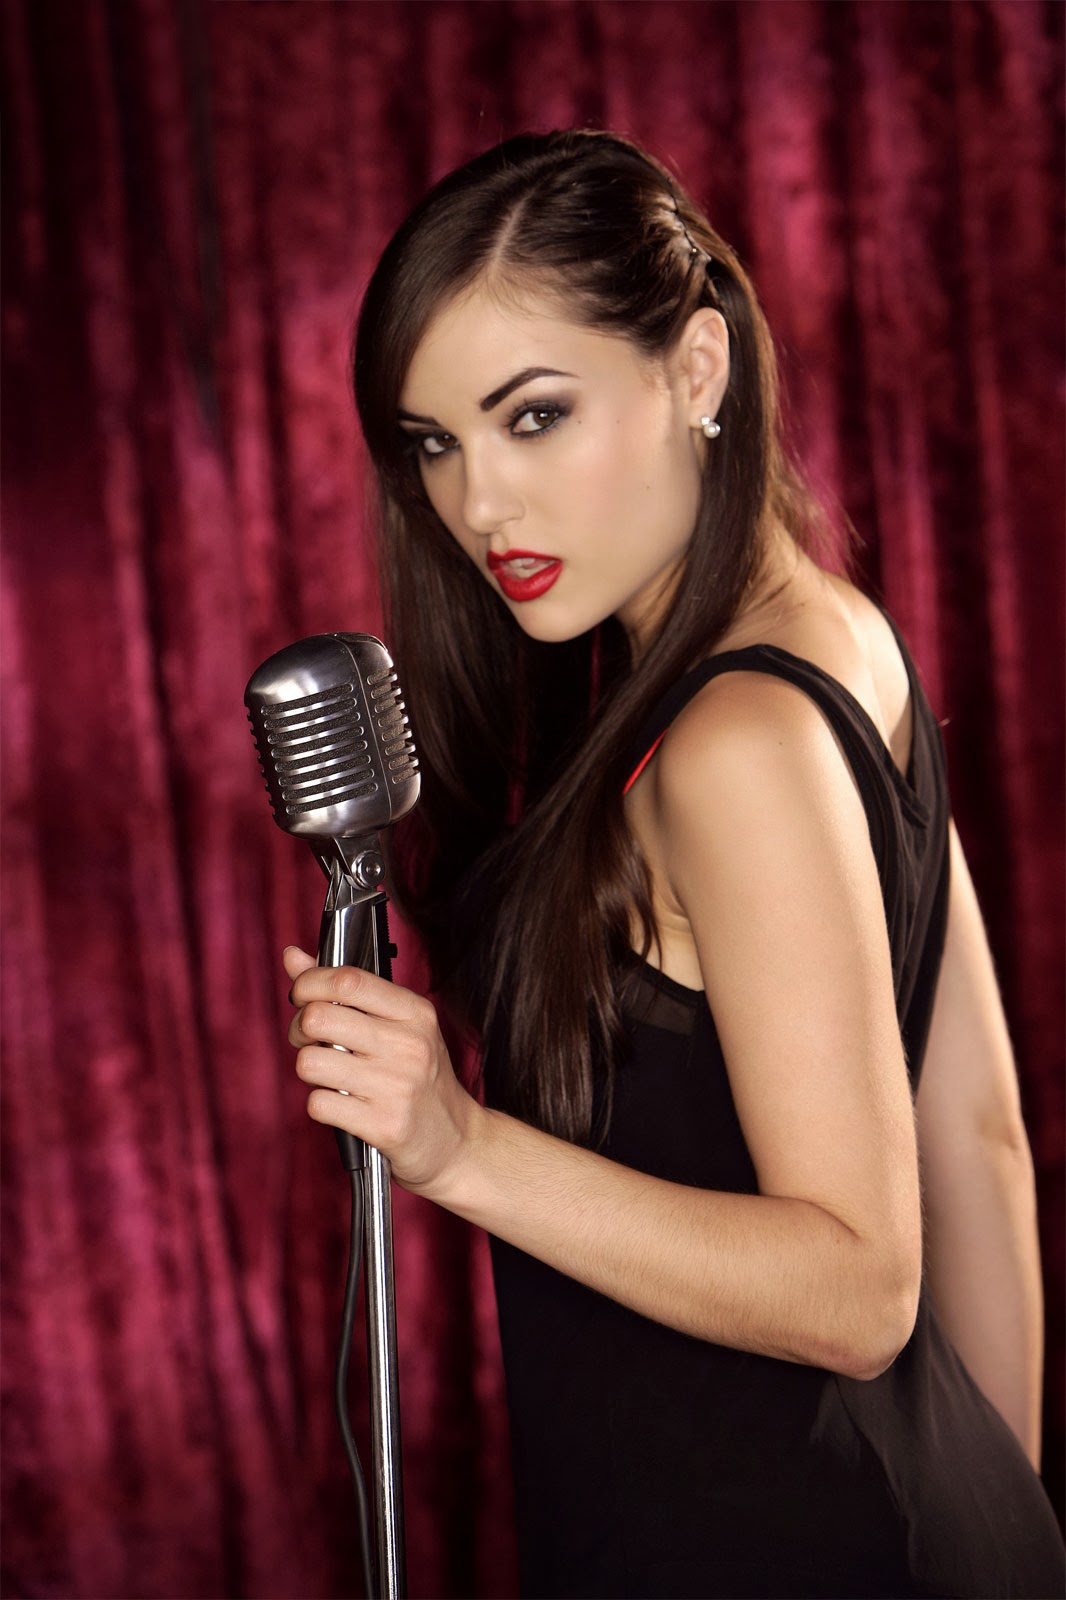 Naked celebrities - Nude Sasha Grey